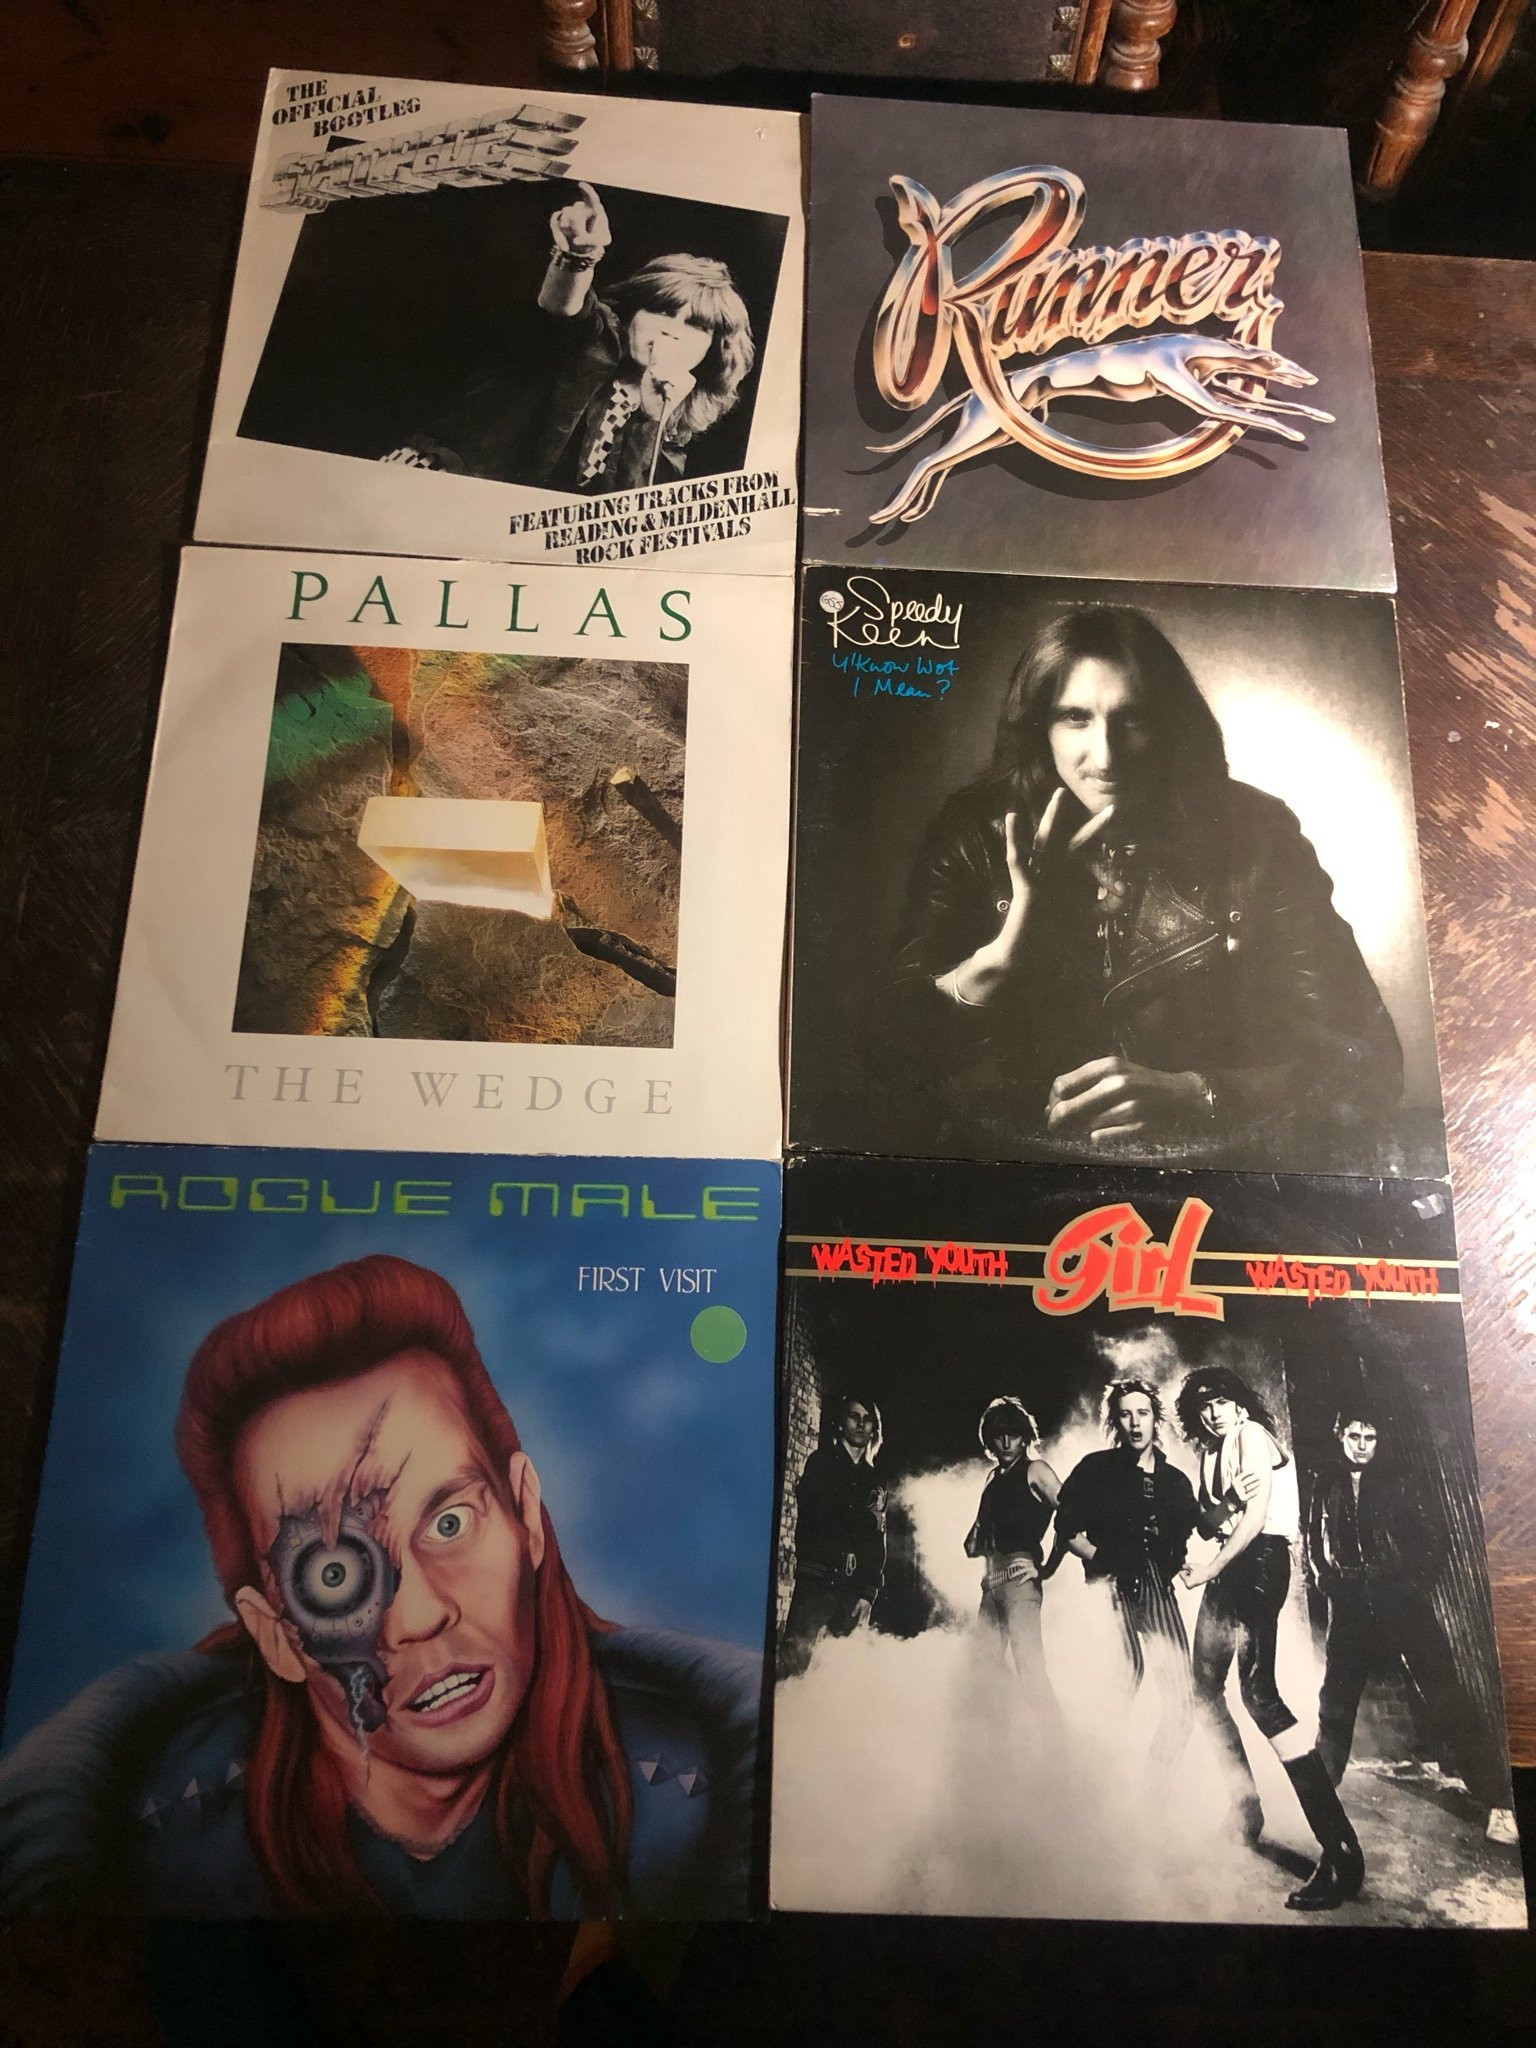 6 NWOBHM Album! ROGUE MALE. STAMPEDE. PALLAS. RUNNER. GIRL. S. KEEN. METAL progg